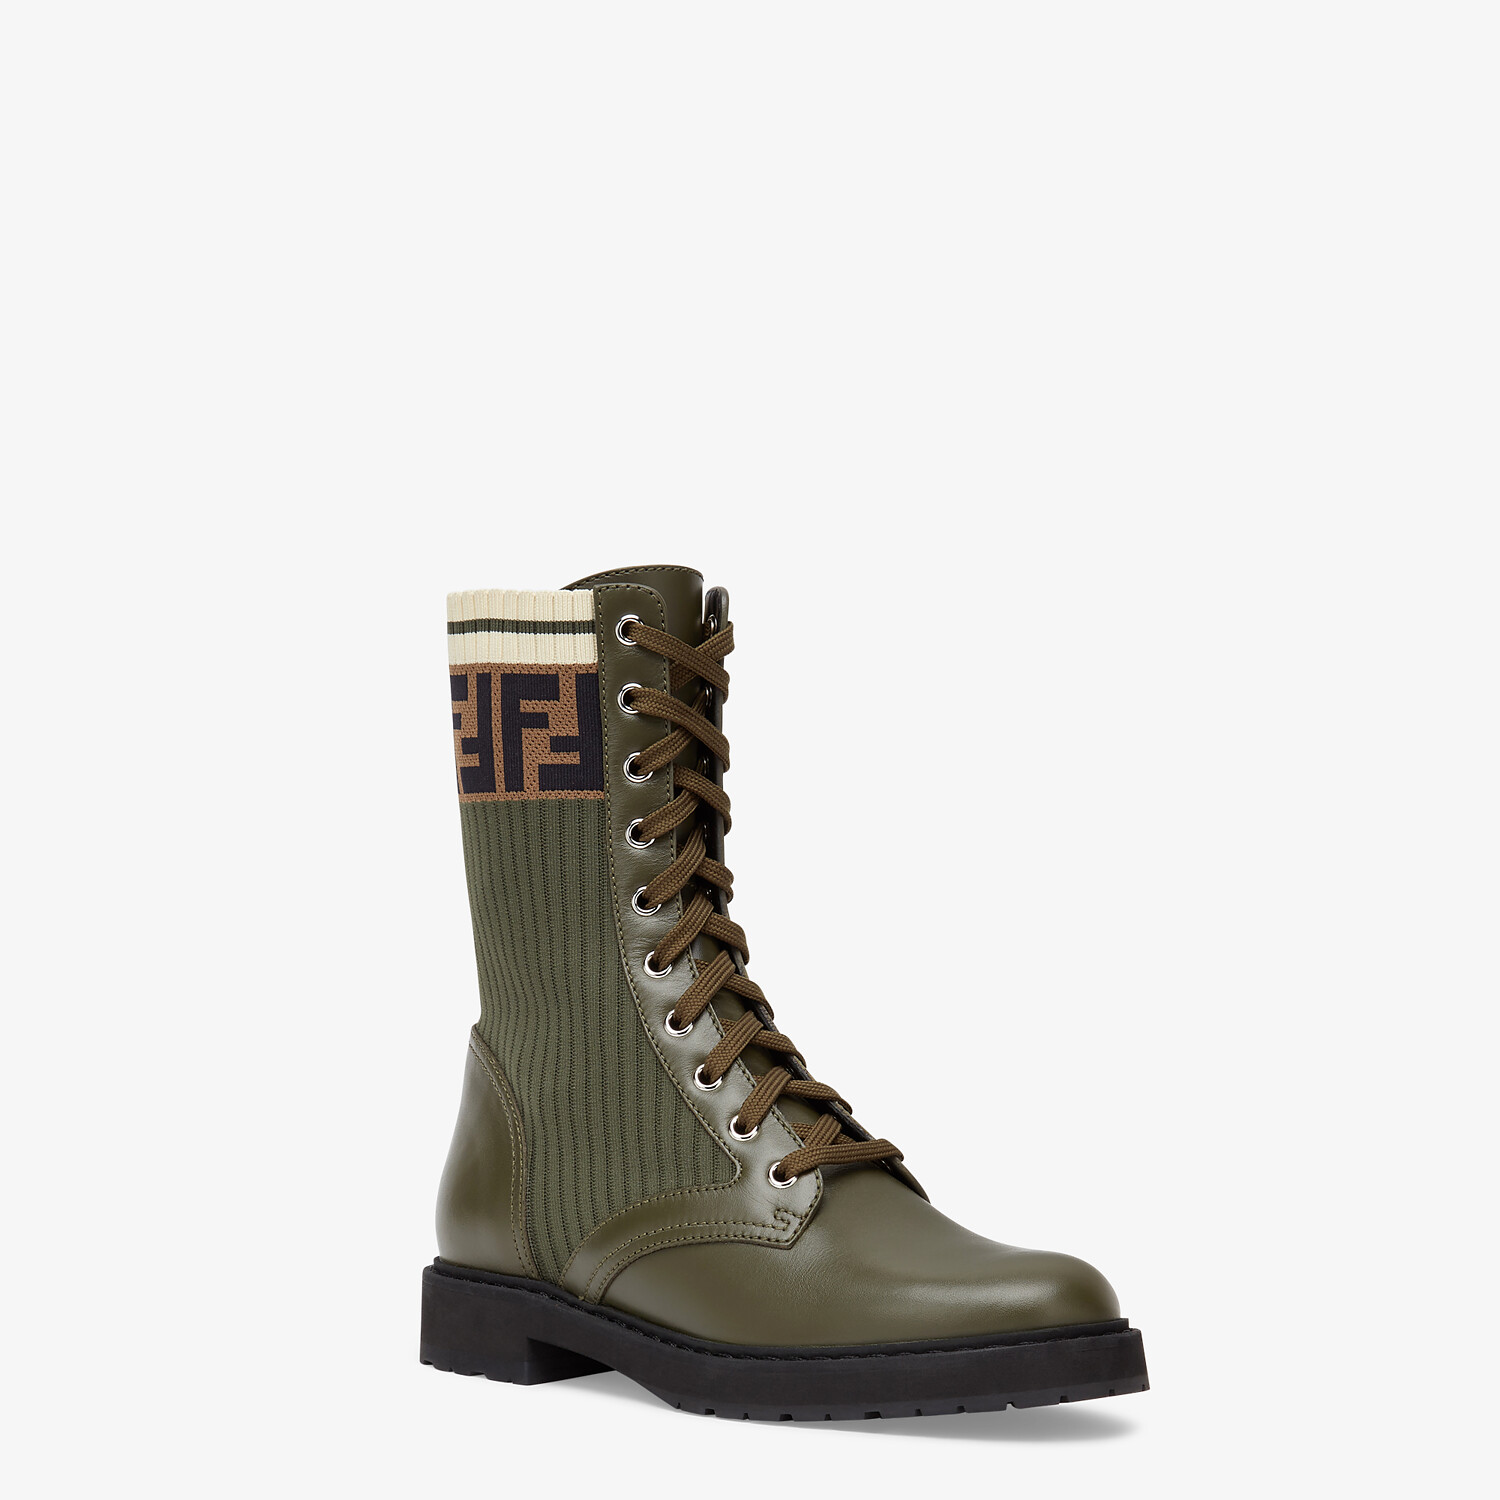 FENDI ANKLE BOOTS - Green leather biker boots - view 2 detail